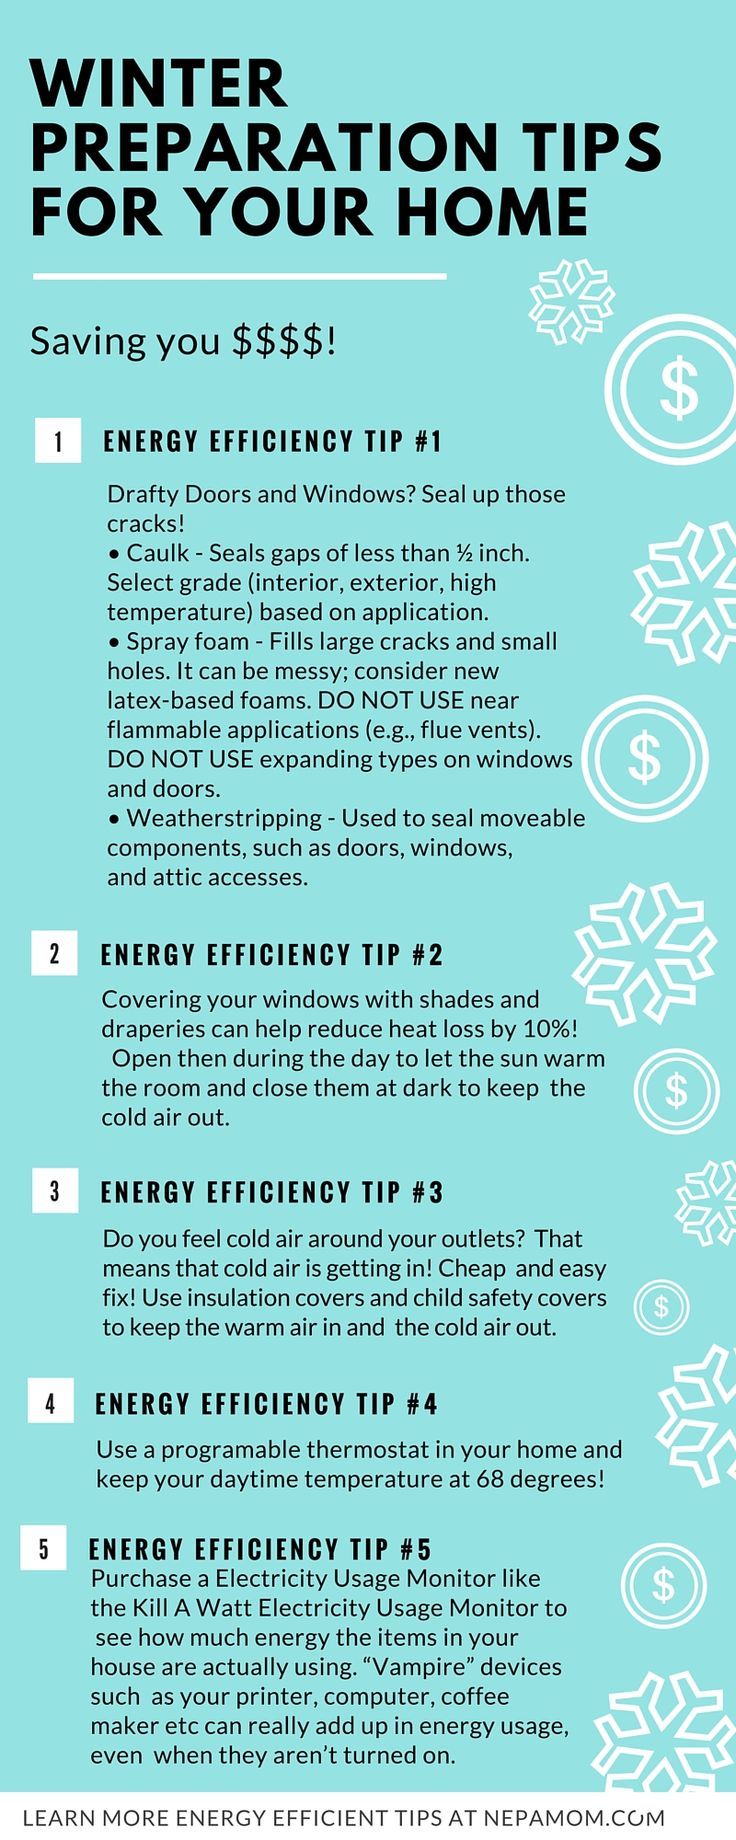 The harold j becker company the moisture protection contractors you - These Easy Winter Preparation Tips For Your Home Will Help You Save Money This Winter On Your Heating Costs